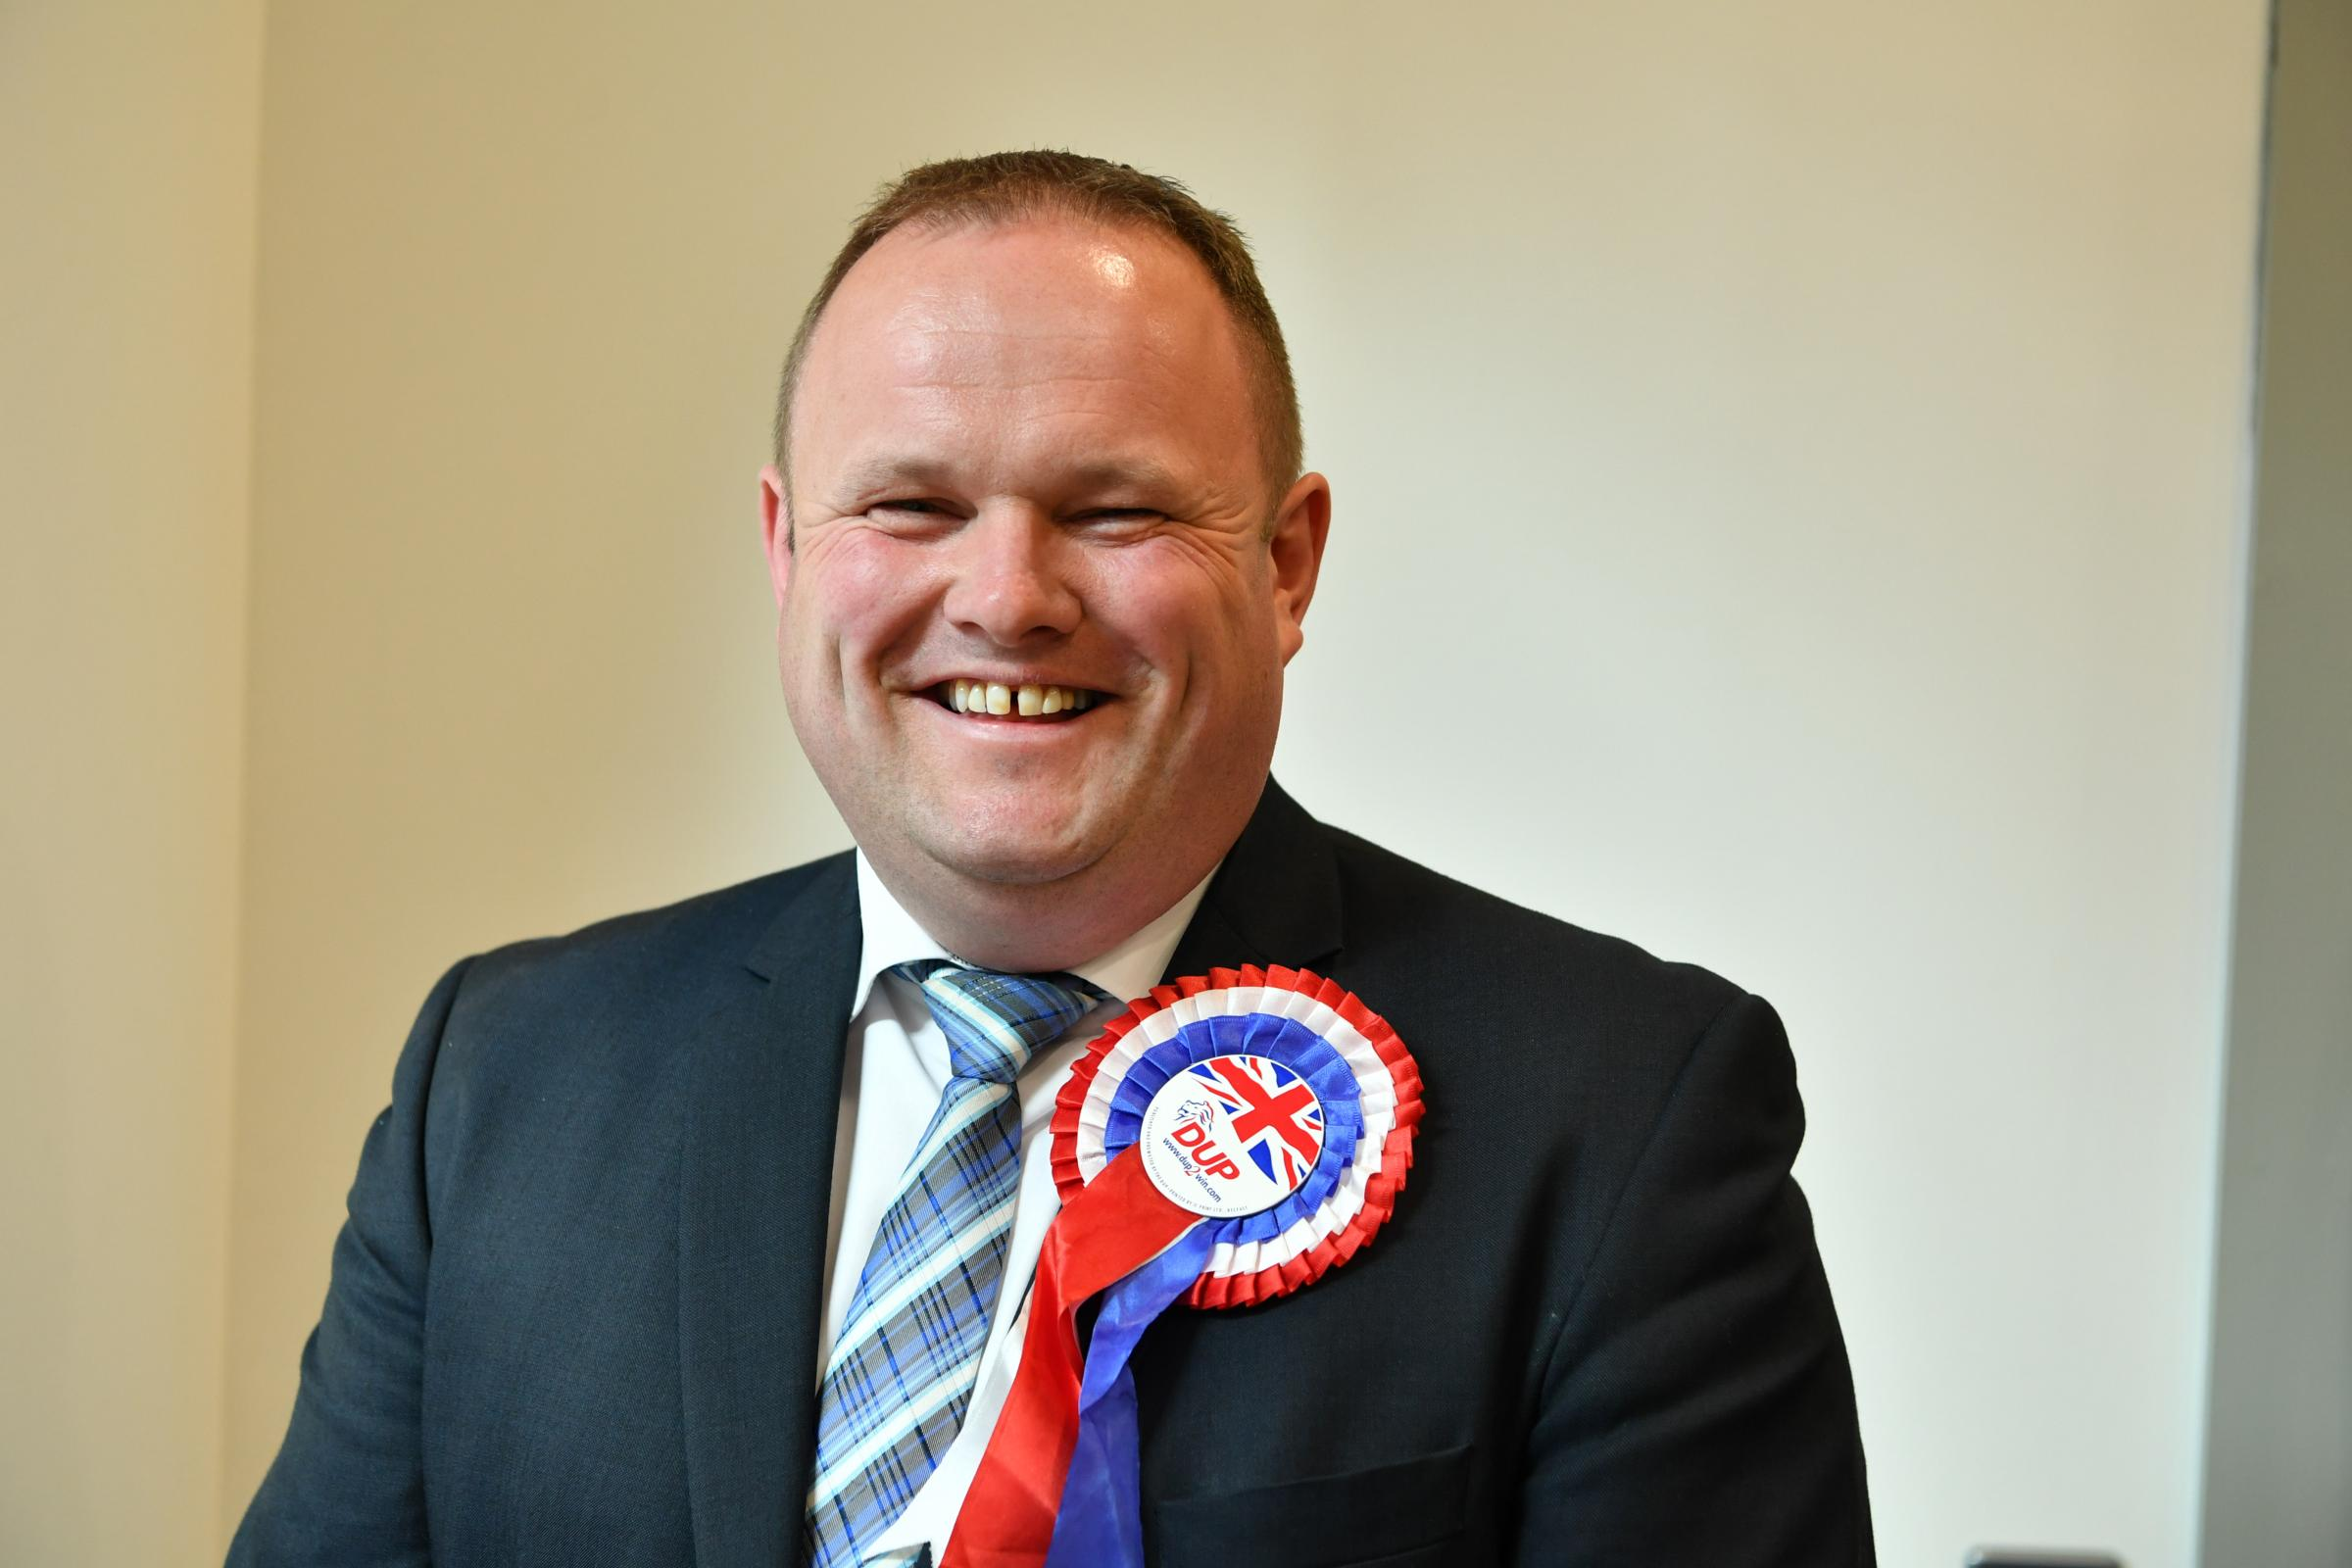 DUP Councillor Keith Elliott who was returned in Enniskillen.